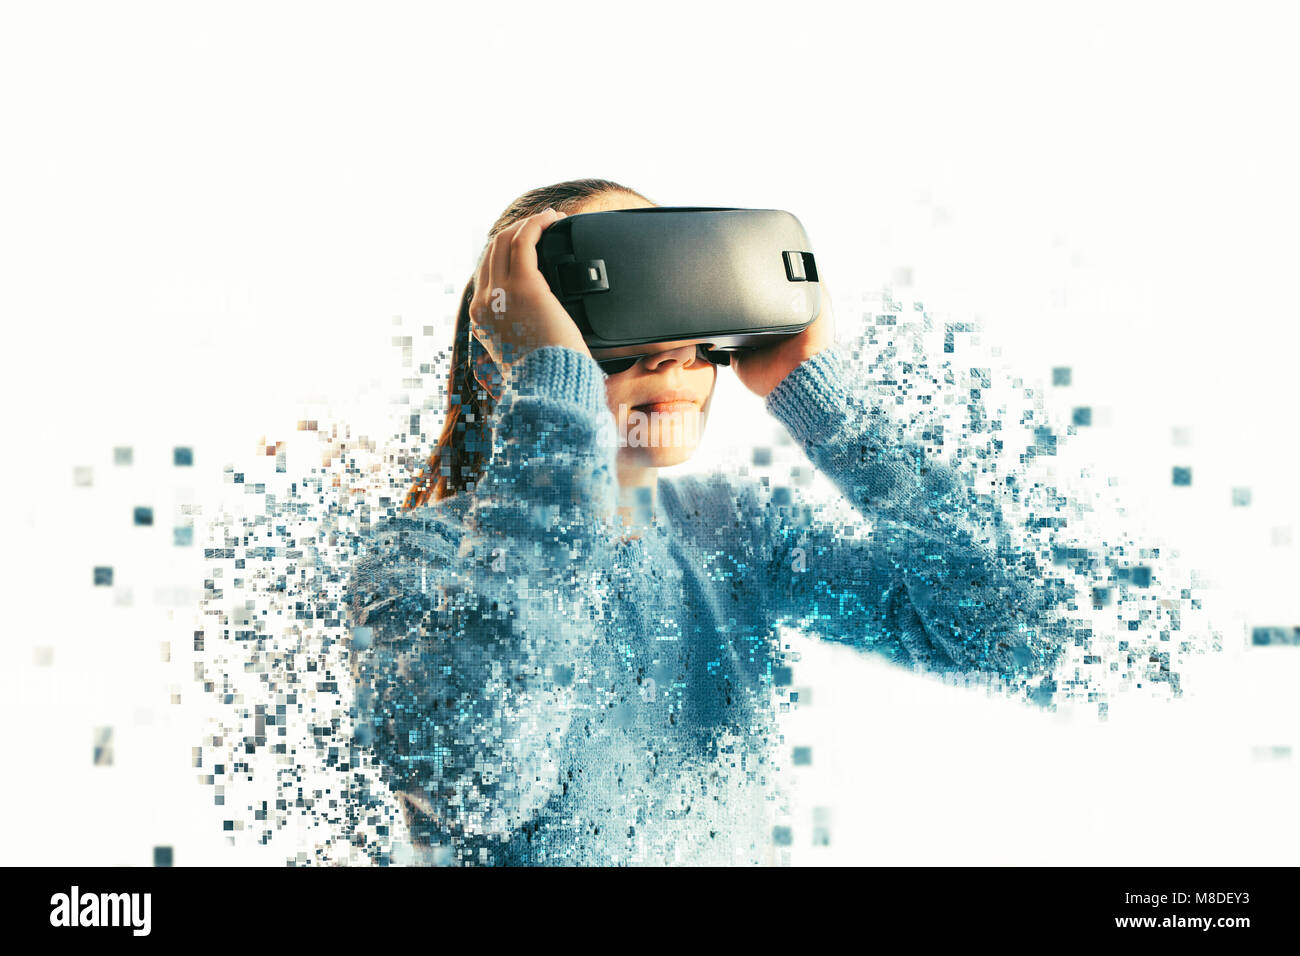 A person in virtual glasses flies to pixels. The woman with glasses of virtual reality. Future technology concept. - Stock Image